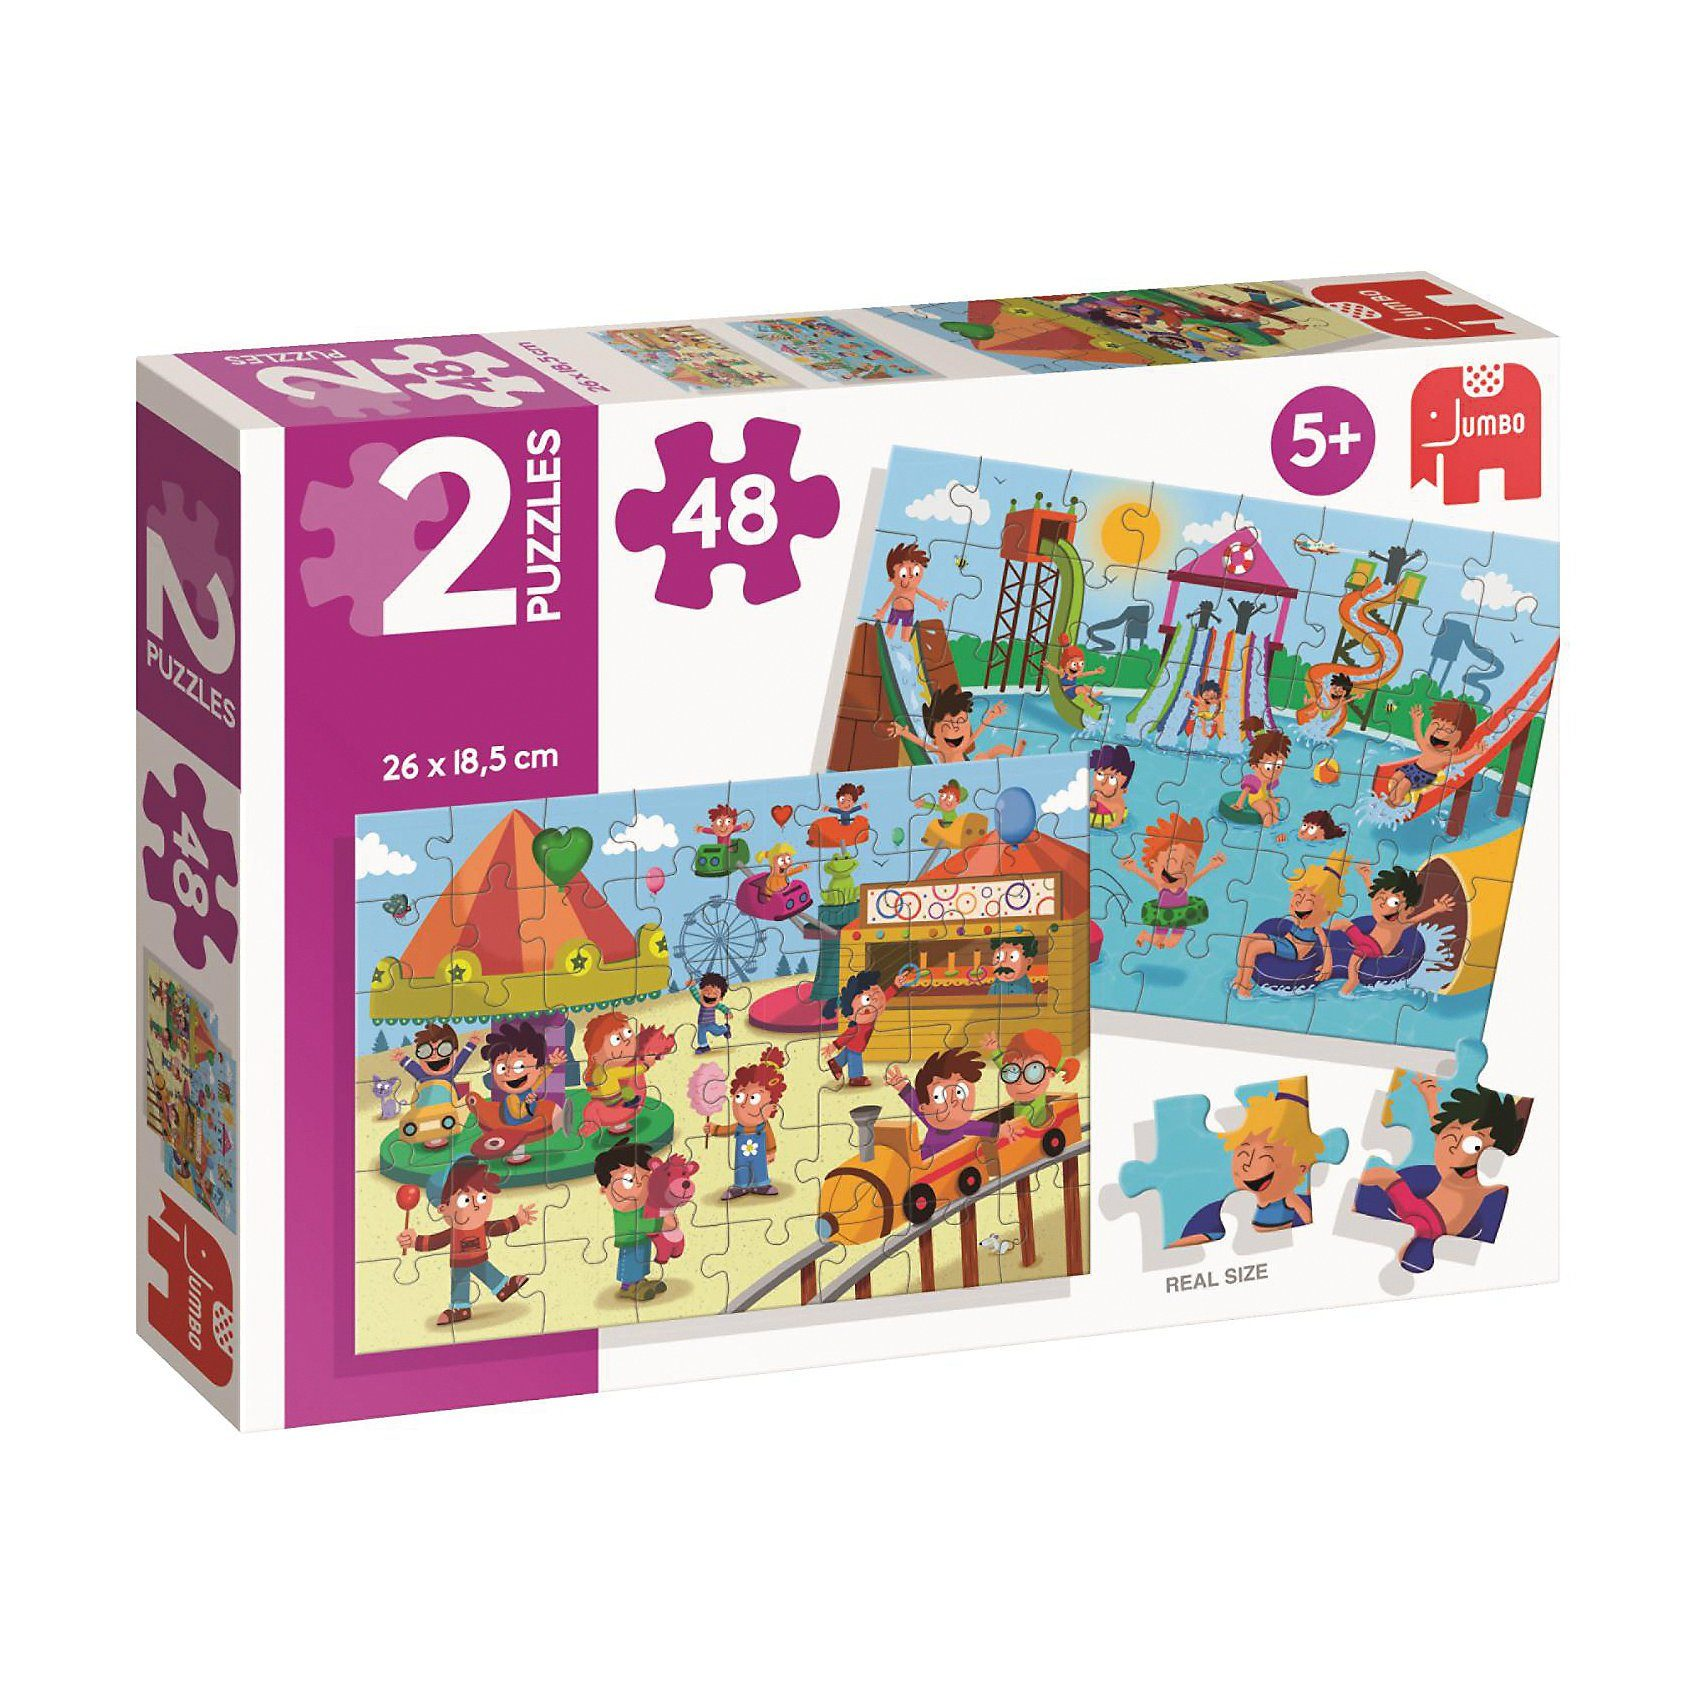 Jumbo Puzzle 2x48 Teile - Schwimmbad & Kirmes